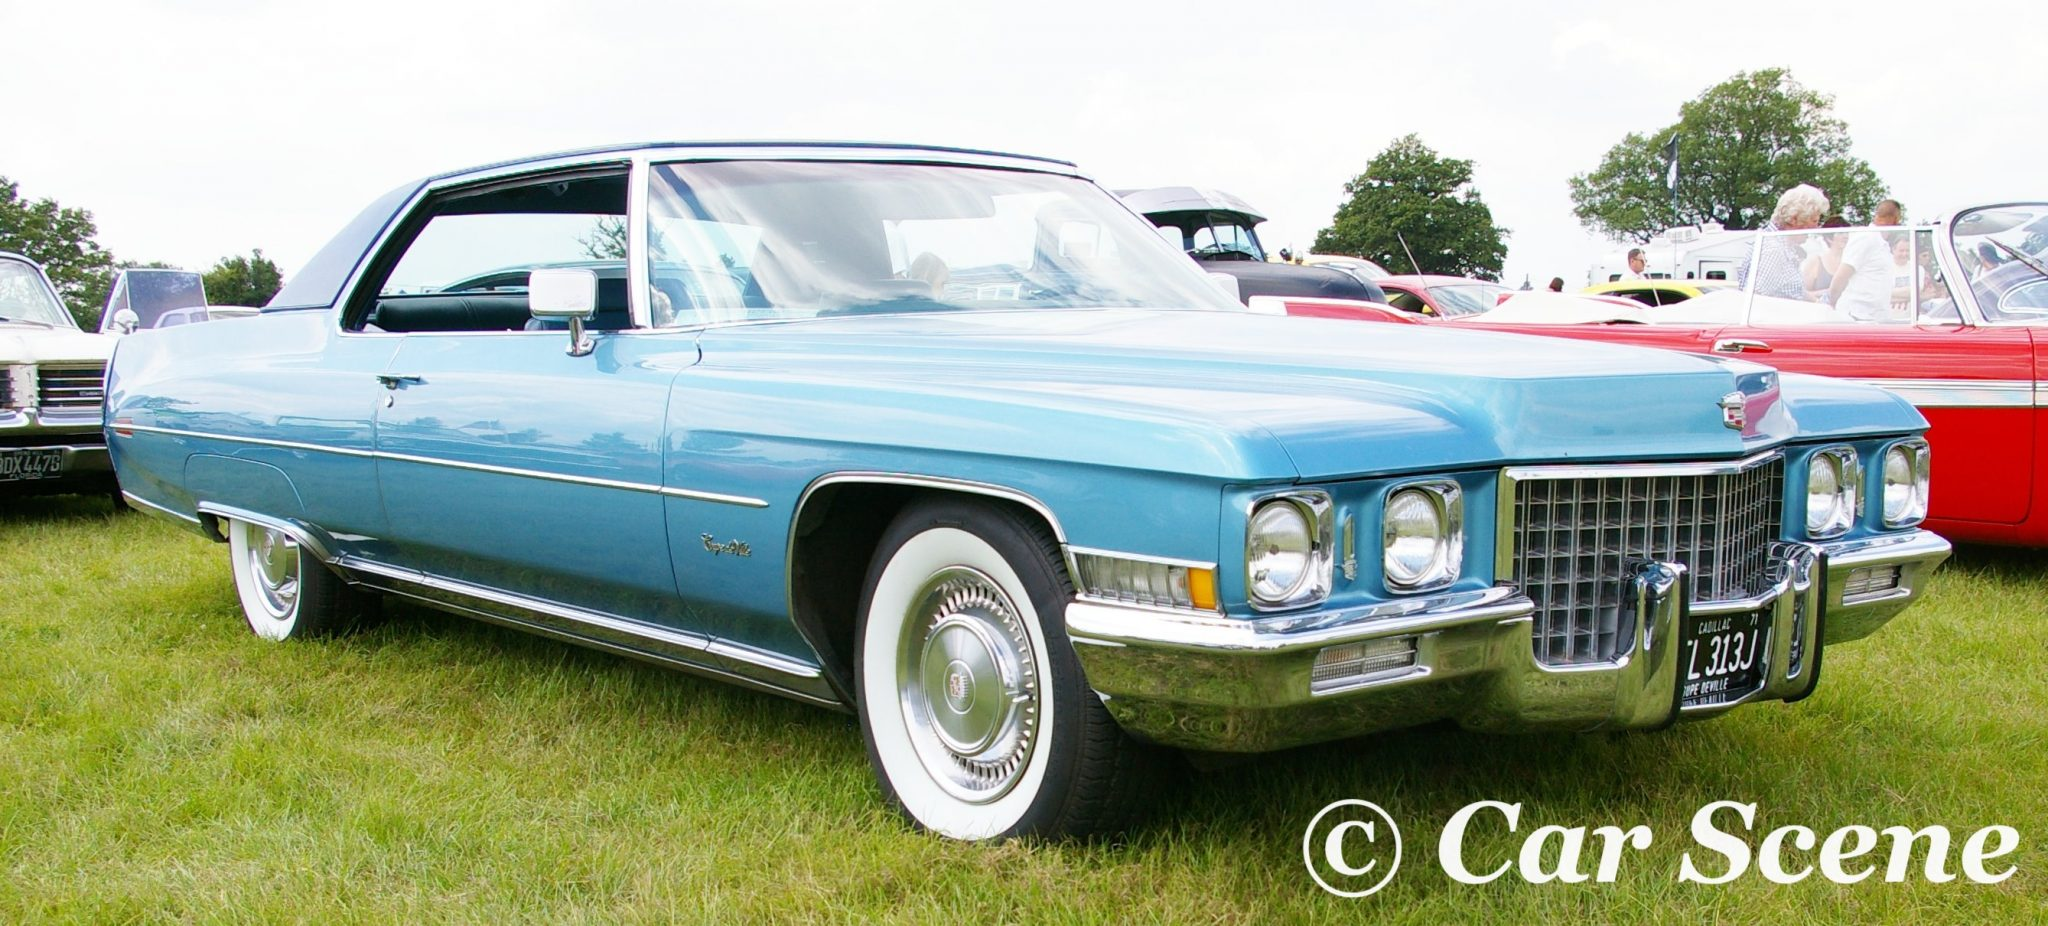 1971 Cadillac Coupe De Ville front three quarters view